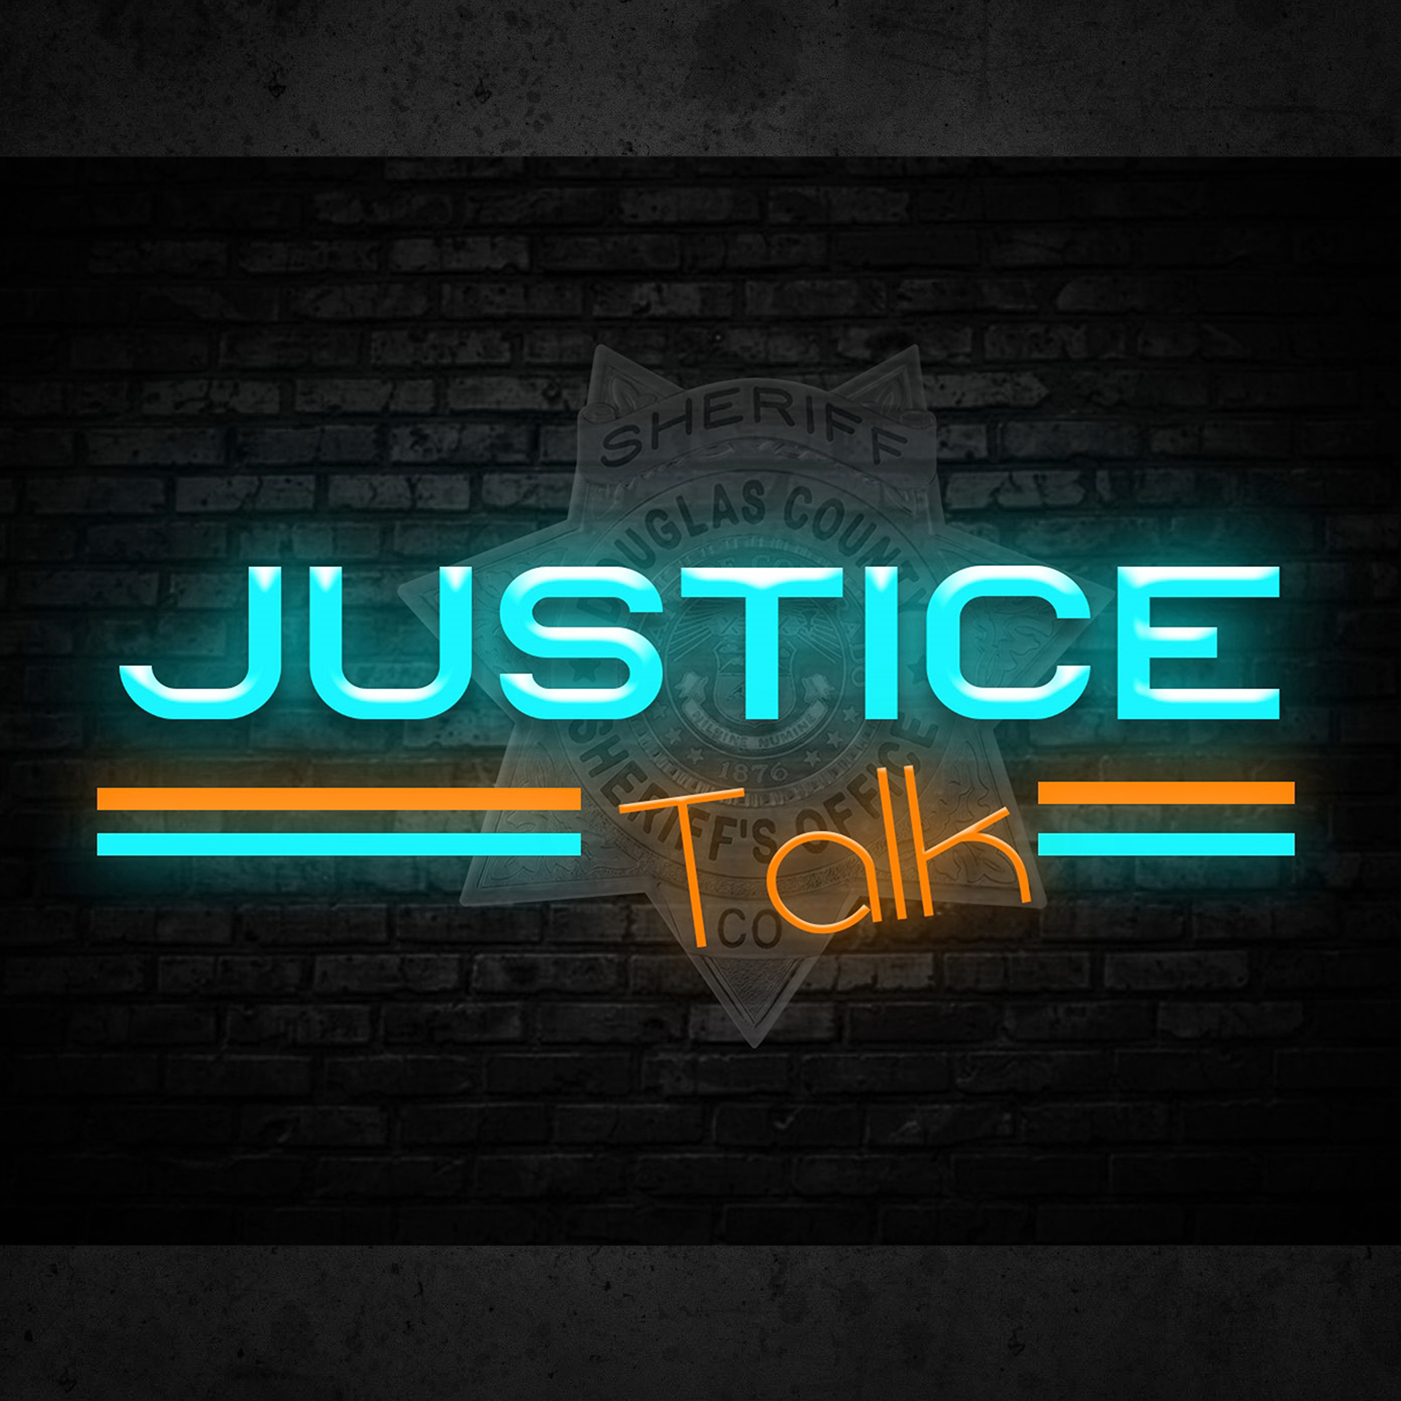 DCSO Justice Talk- Where it's Just Us Talking